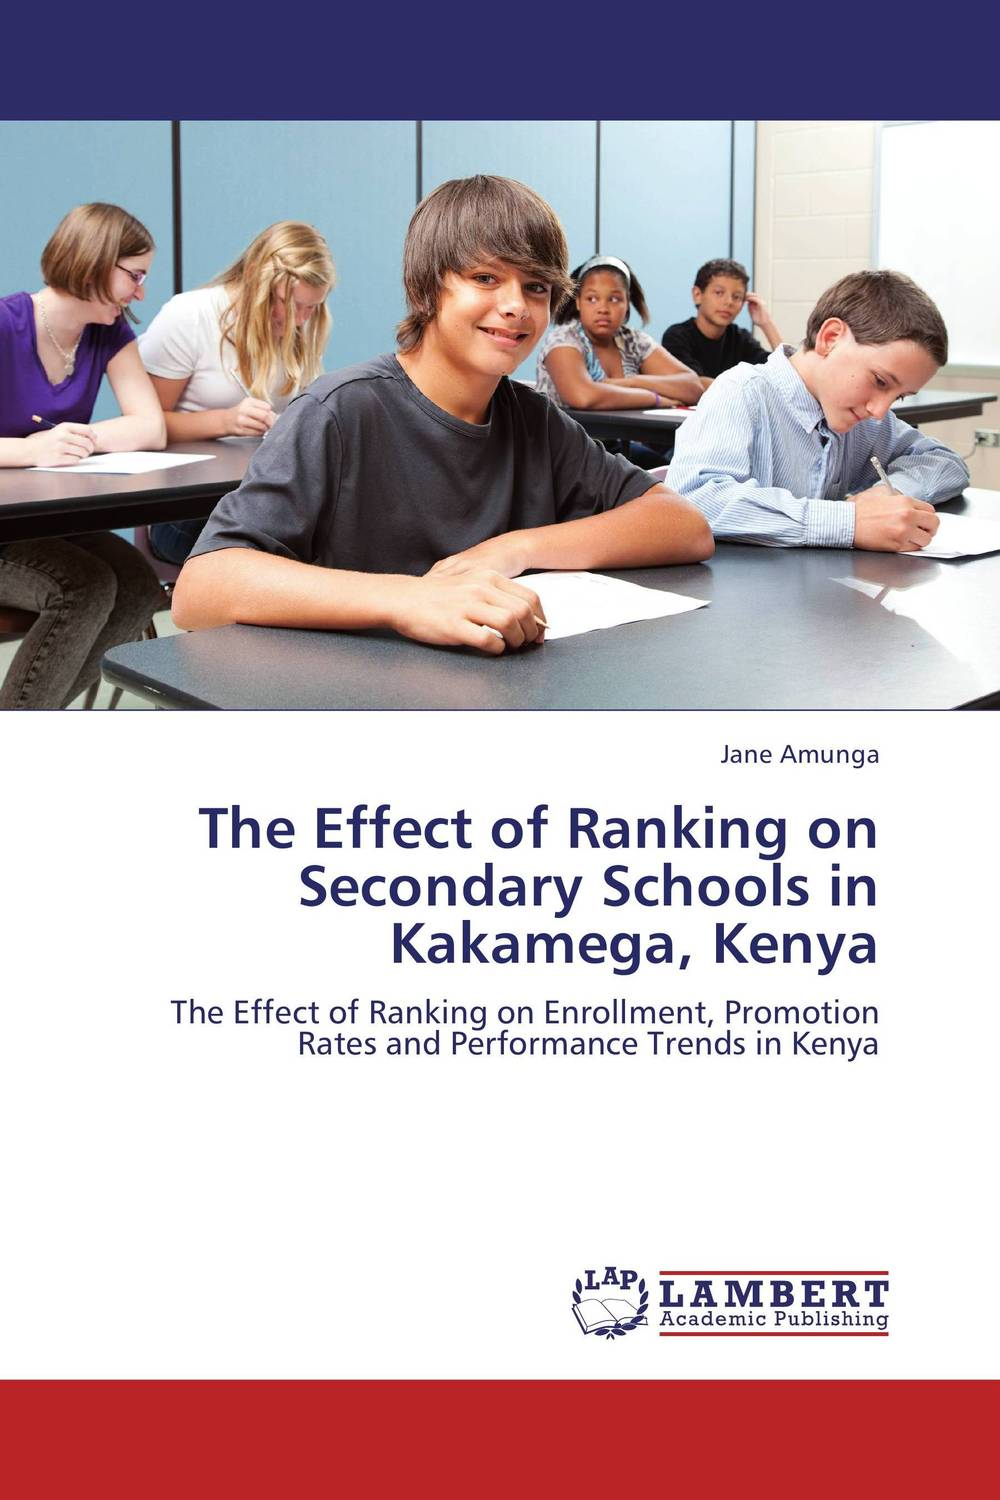 The Effect of Ranking on Secondary Schools in Kakamega, Kenya leadership and performance in public secondary schools in kenya